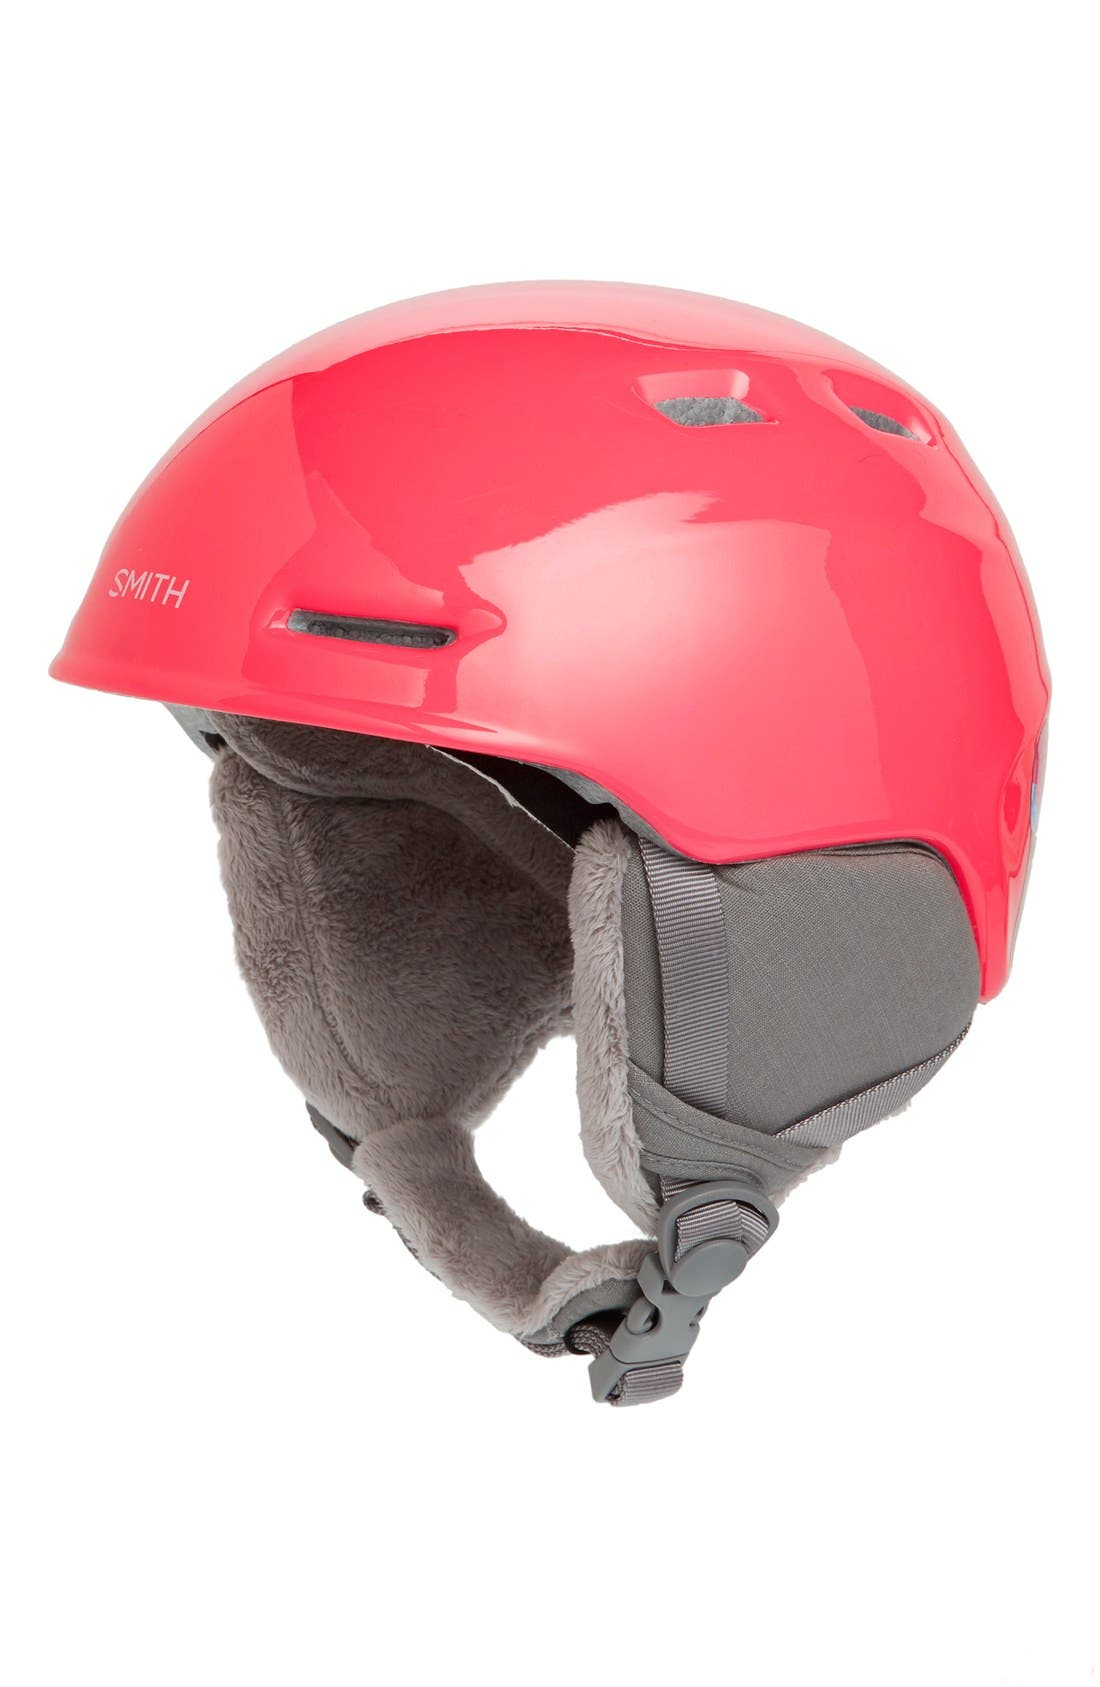 Smith 'Zoom Jr.' Snow Helmet